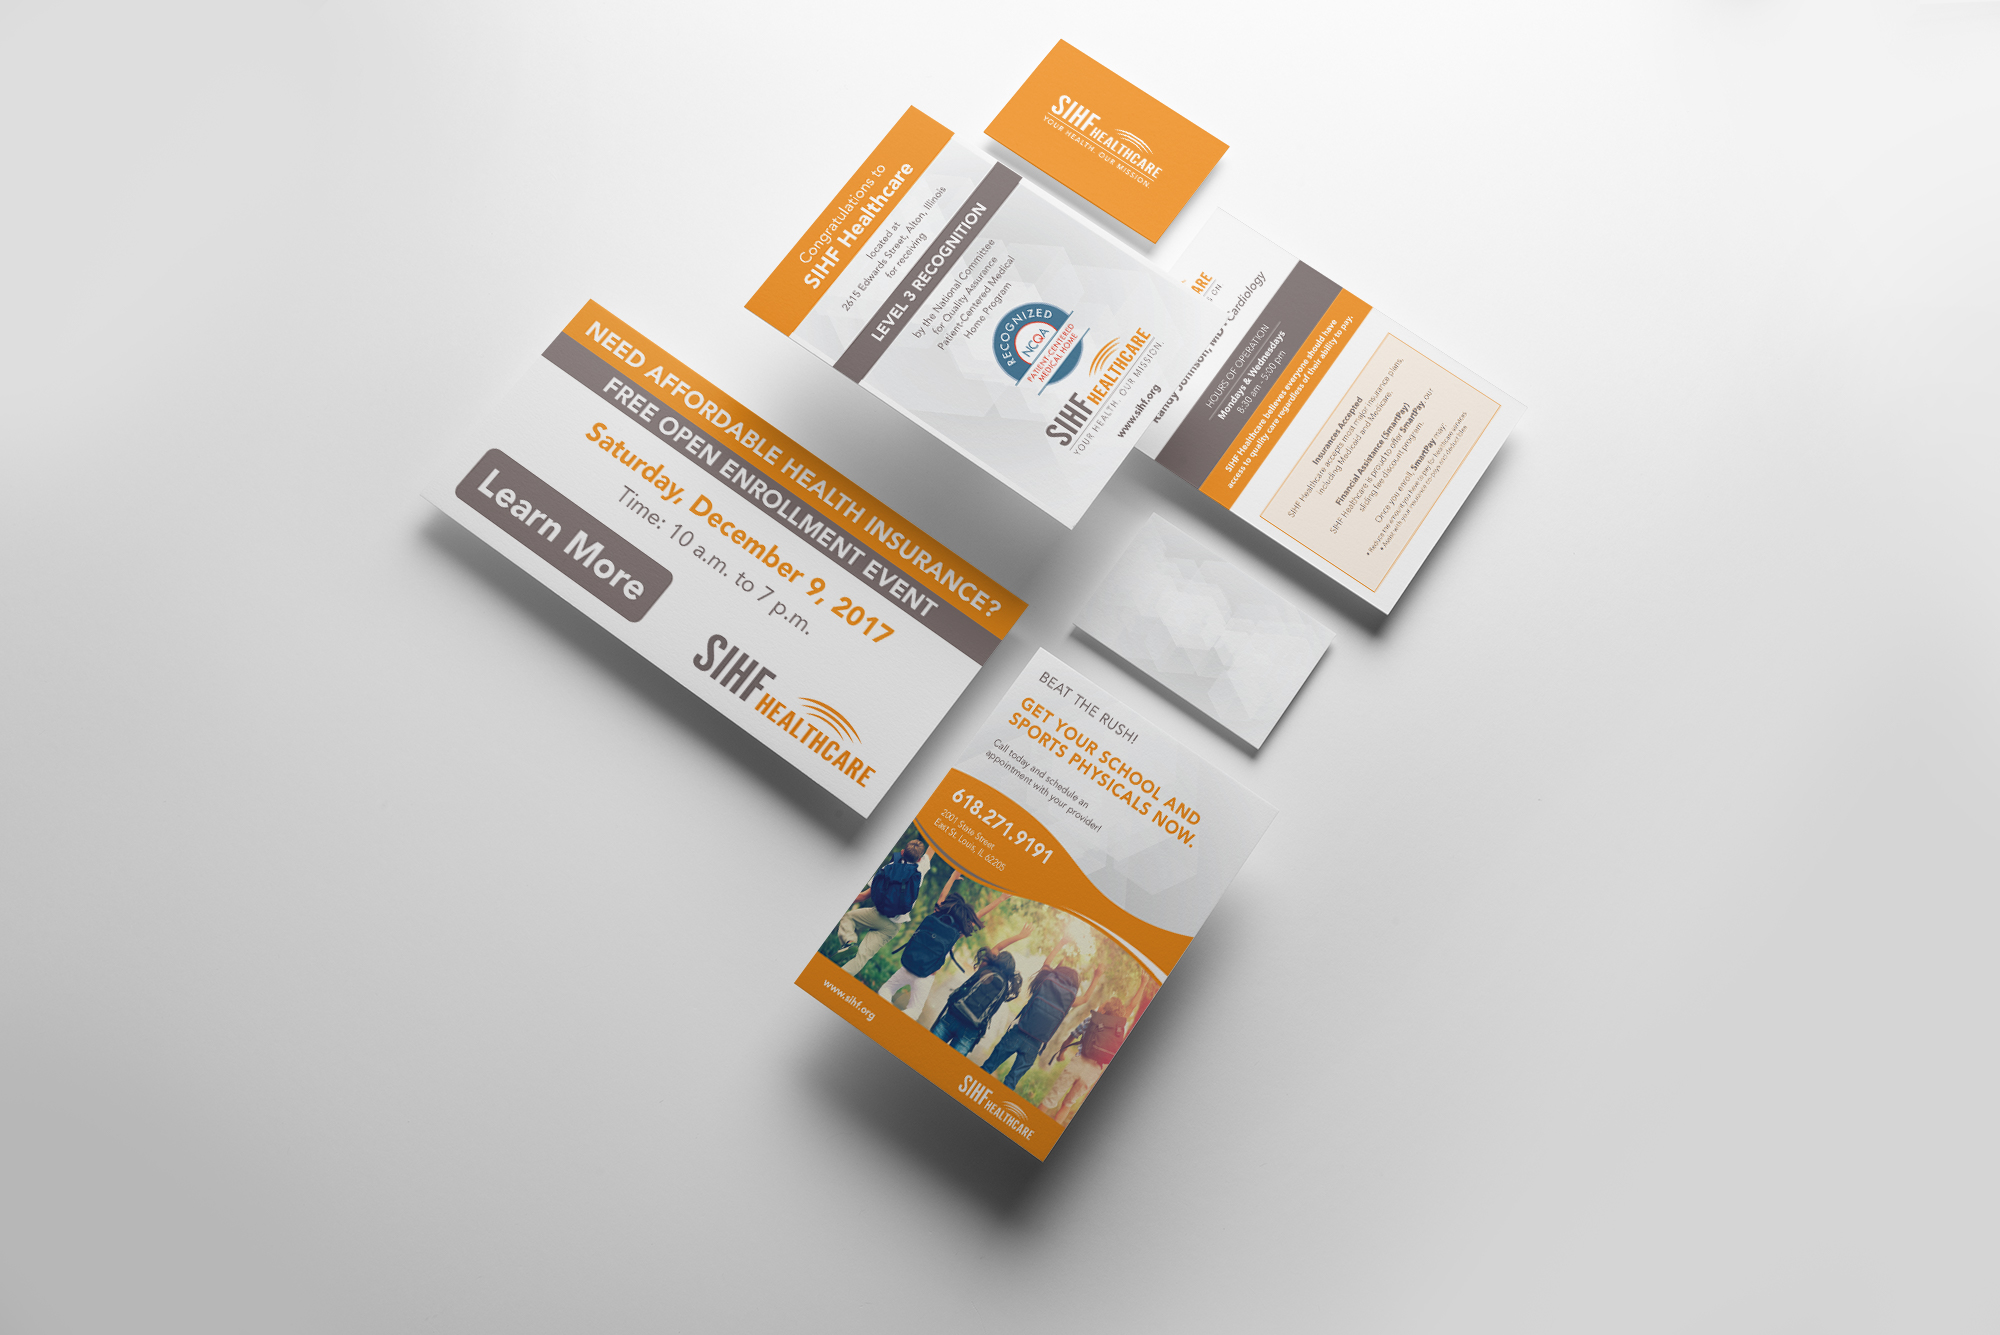 Set of SIHF Healthcare stationary and business cards